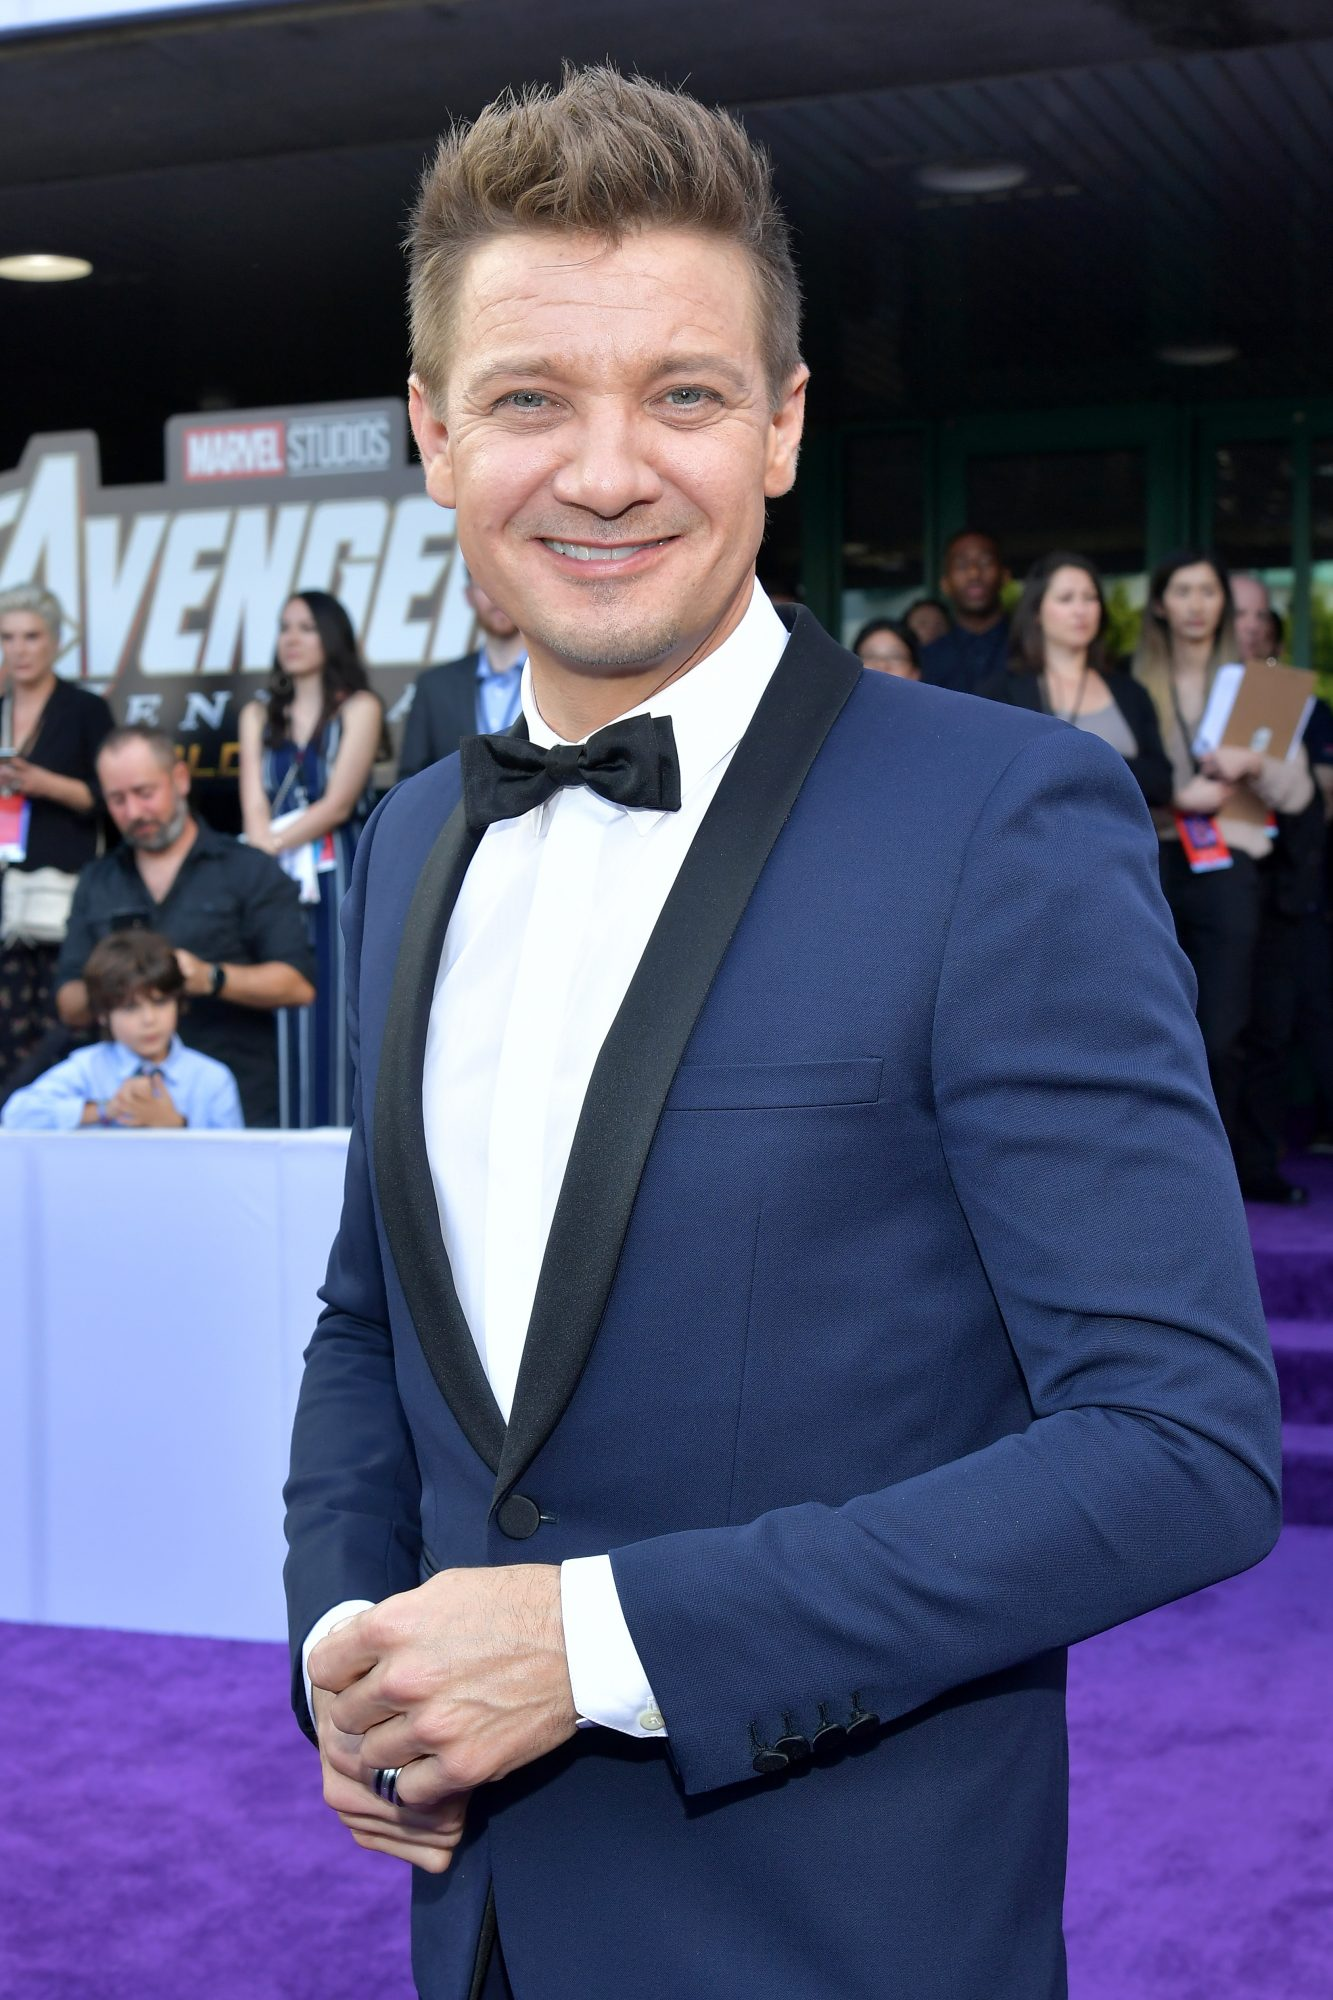 """Jeremy Renner attends the world premiere of Walt Disney Studios Motion Pictures """"Avengers: Endgame"""" at the Los Angeles Convention Center on April 22, 2019 in Los Angeles, California. (Photo by Amy Sussman/Getty Images)"""